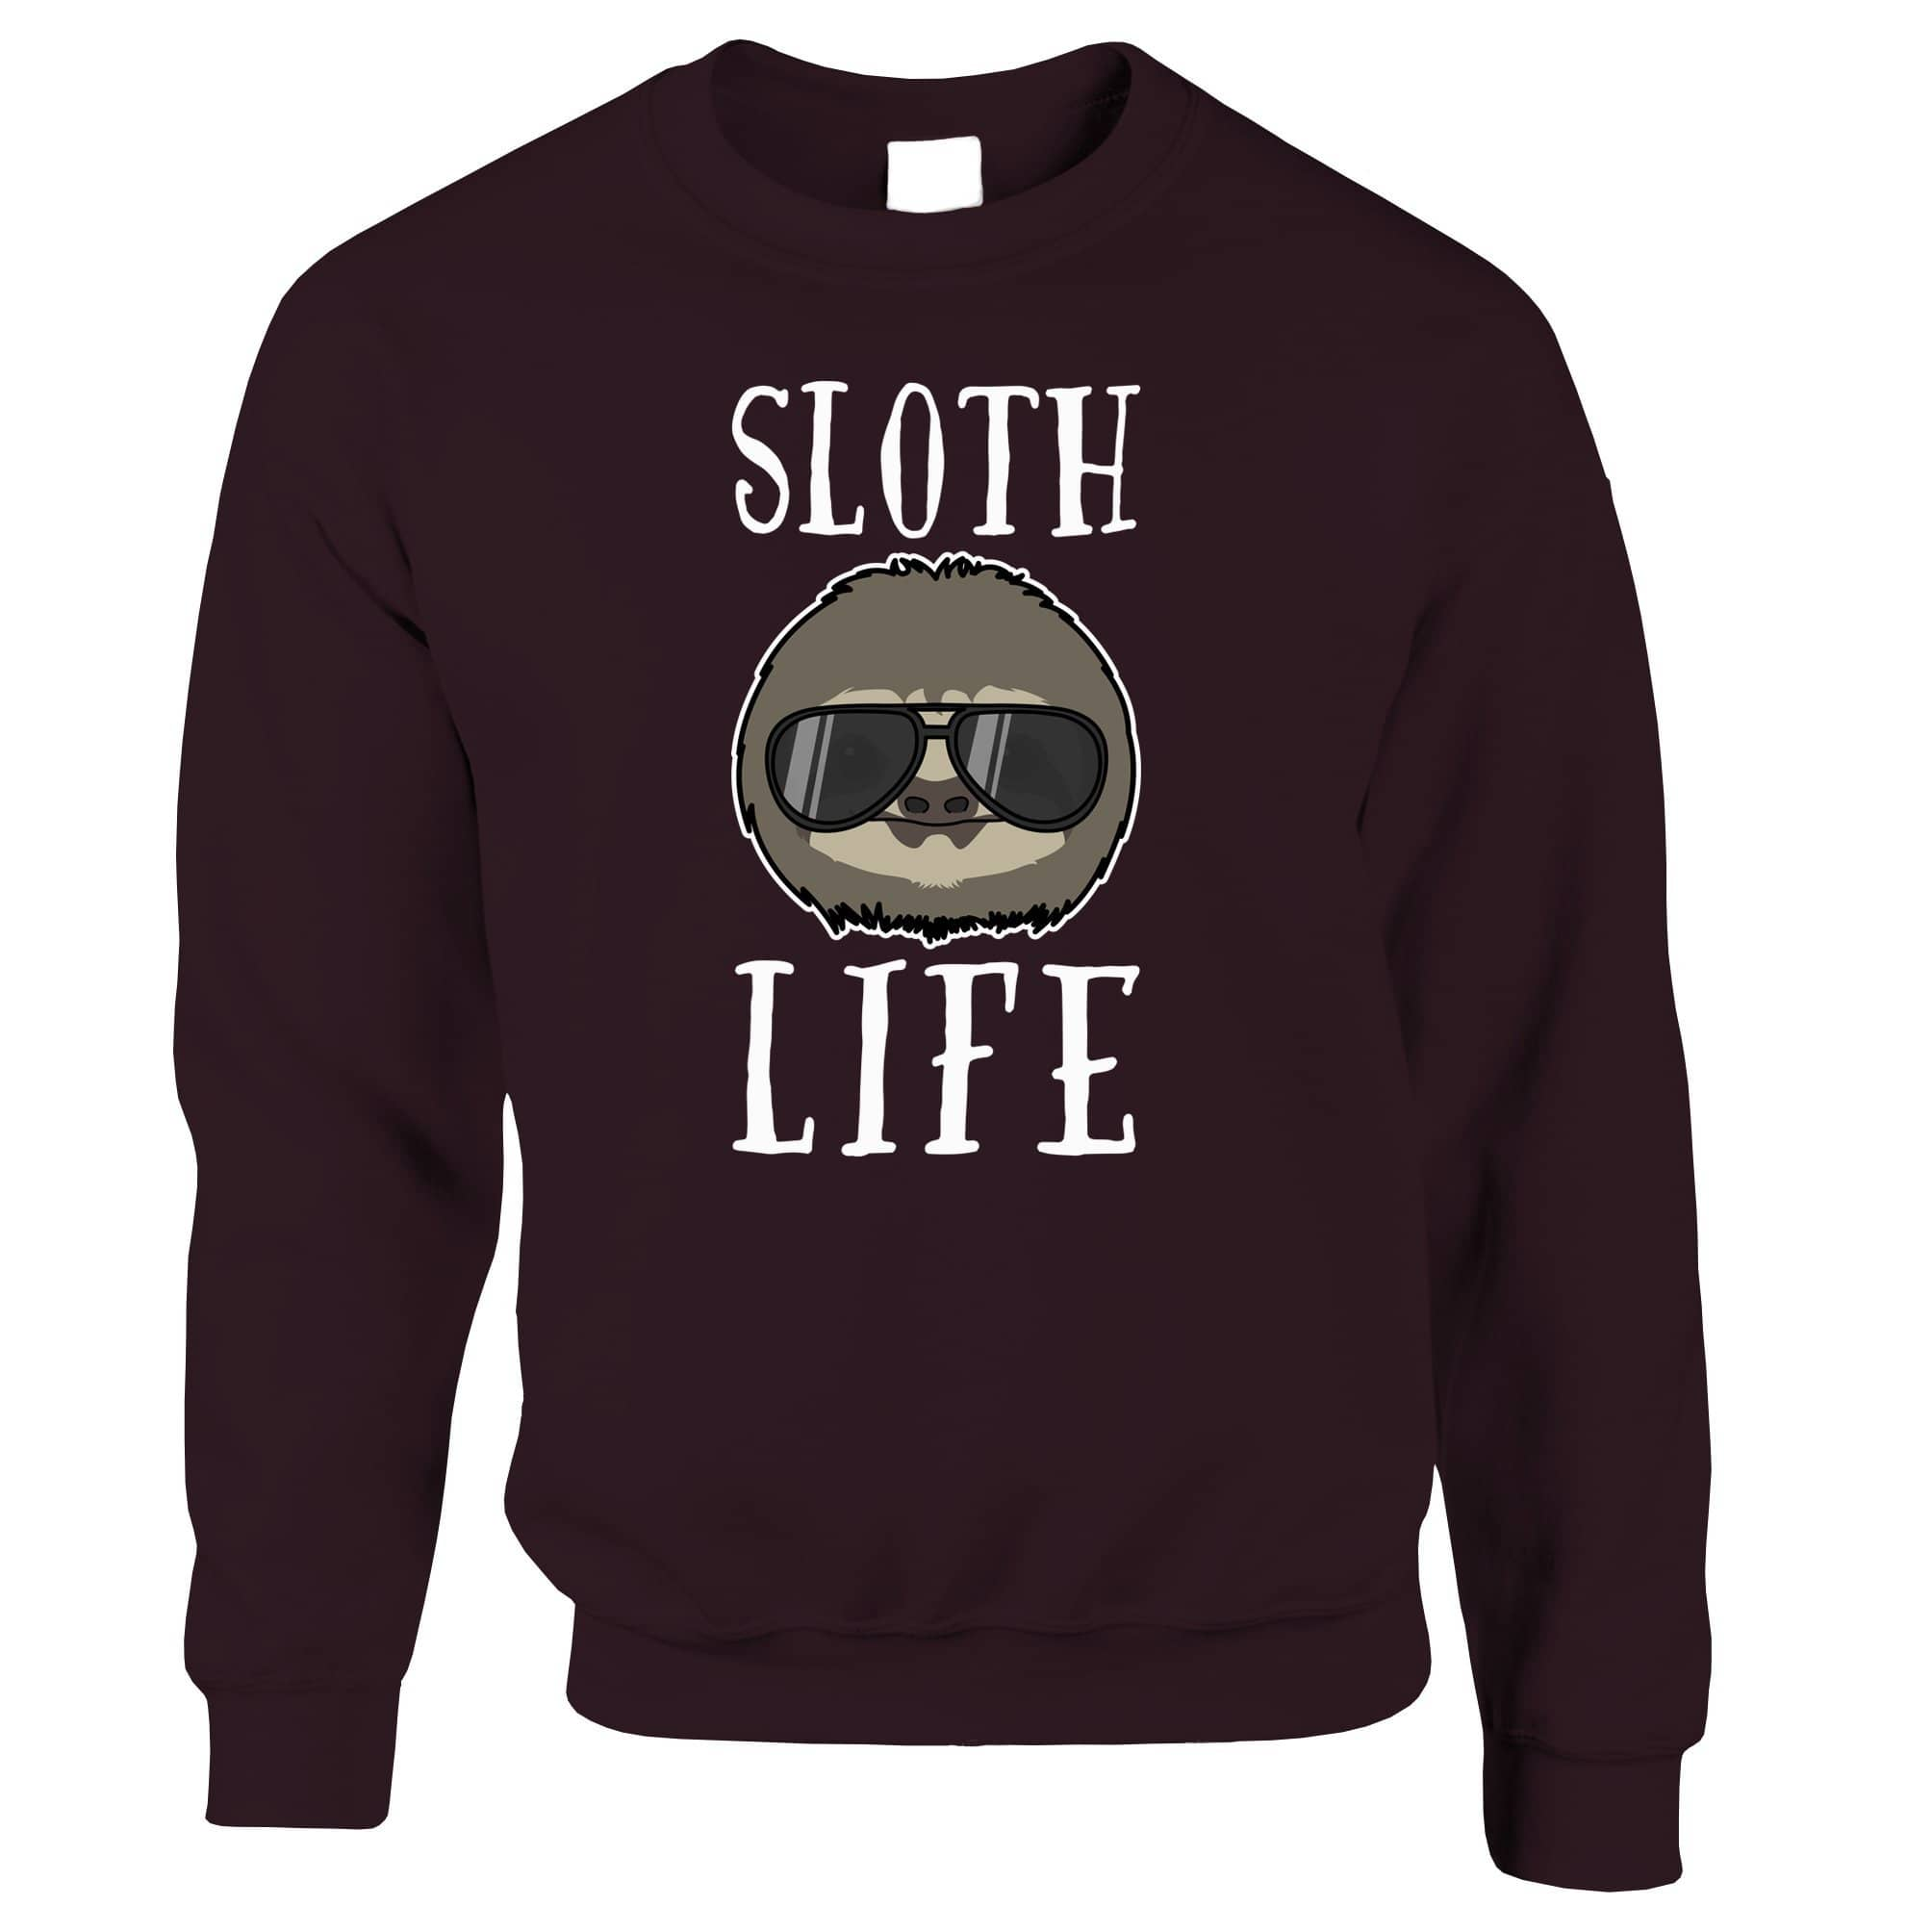 Novelty Animal Jumper Sloth Life Pun Slogan Sweatshirt Sweater